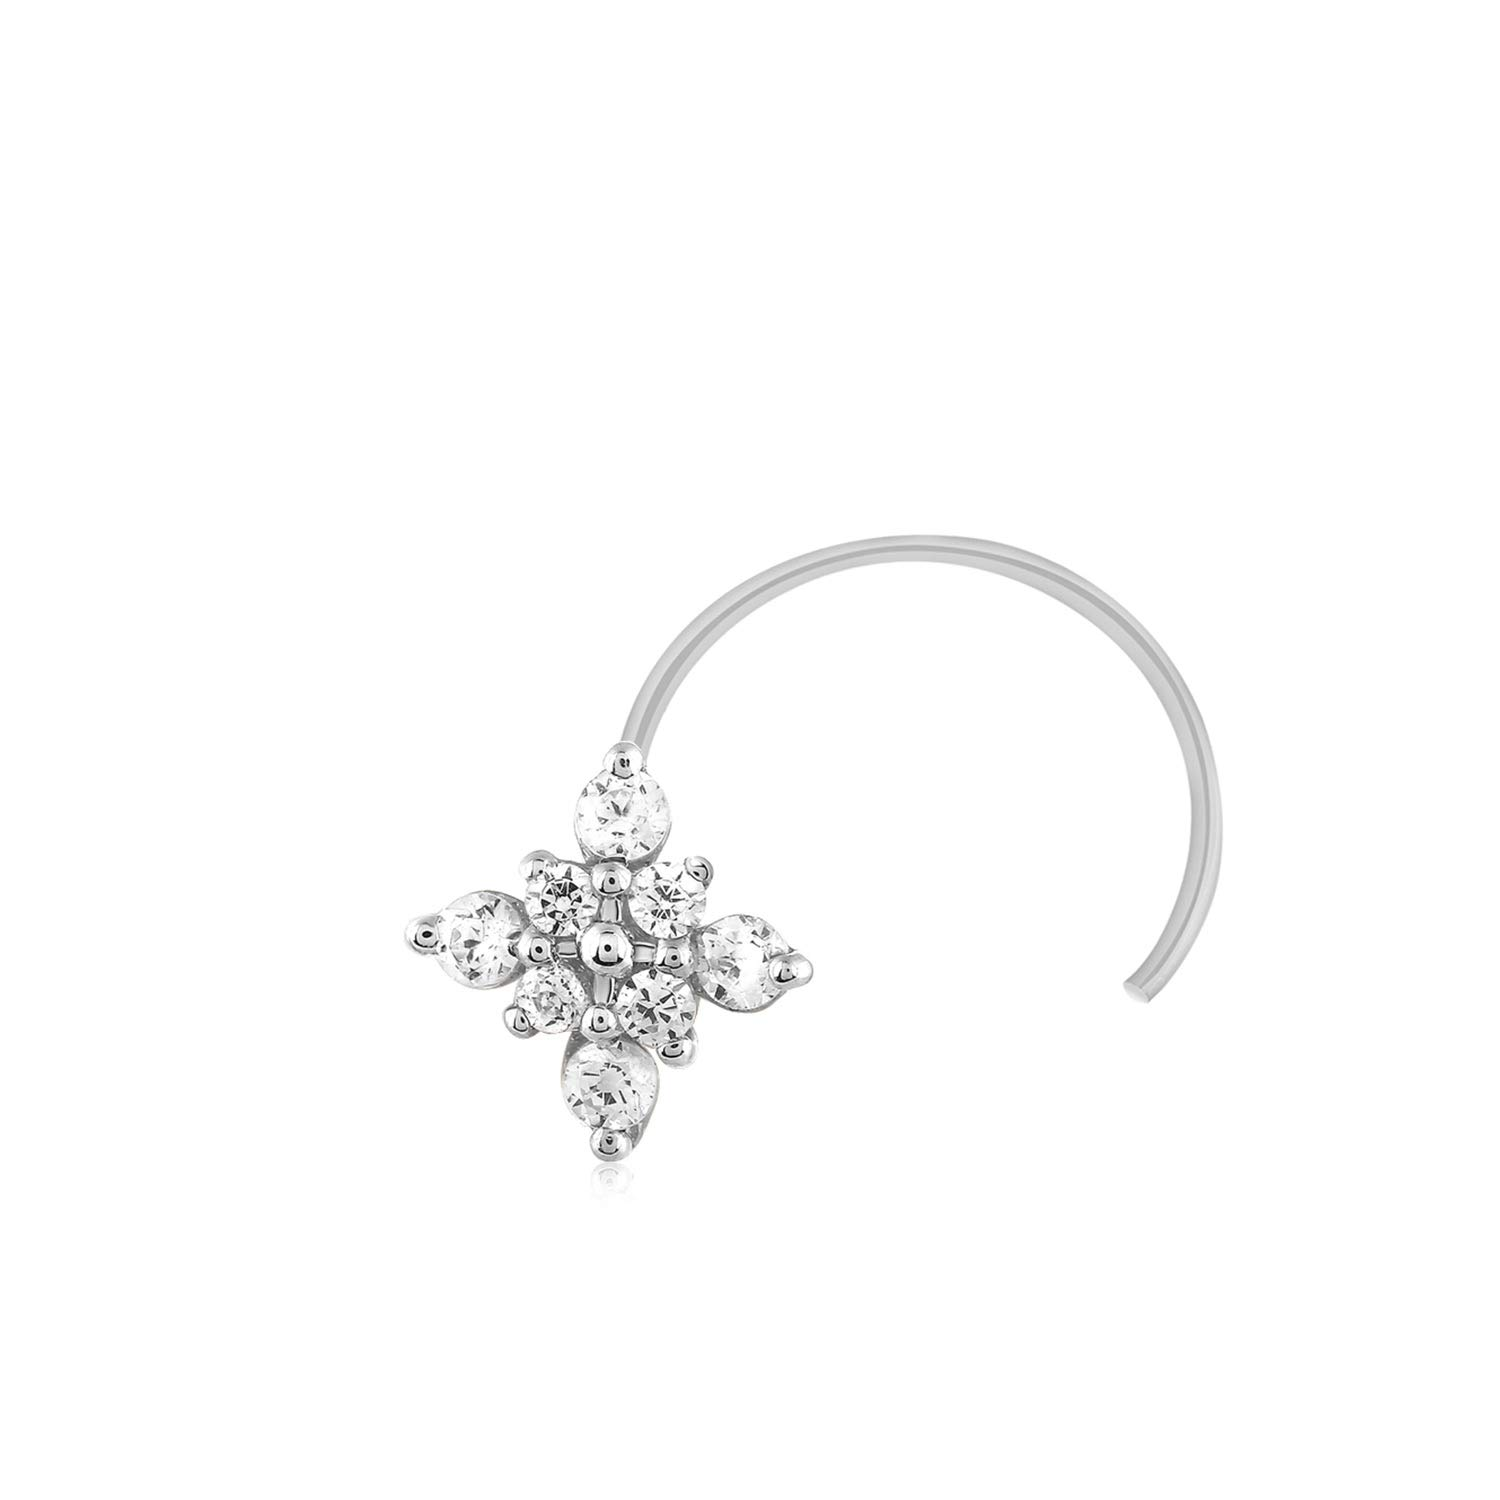 CARATS FOR YOU 0.08ct Round Shape Genuine Real Natural Diamond 10k White Gold Floral Nose Ring Stud Pin for women by CARATS FOR YOU